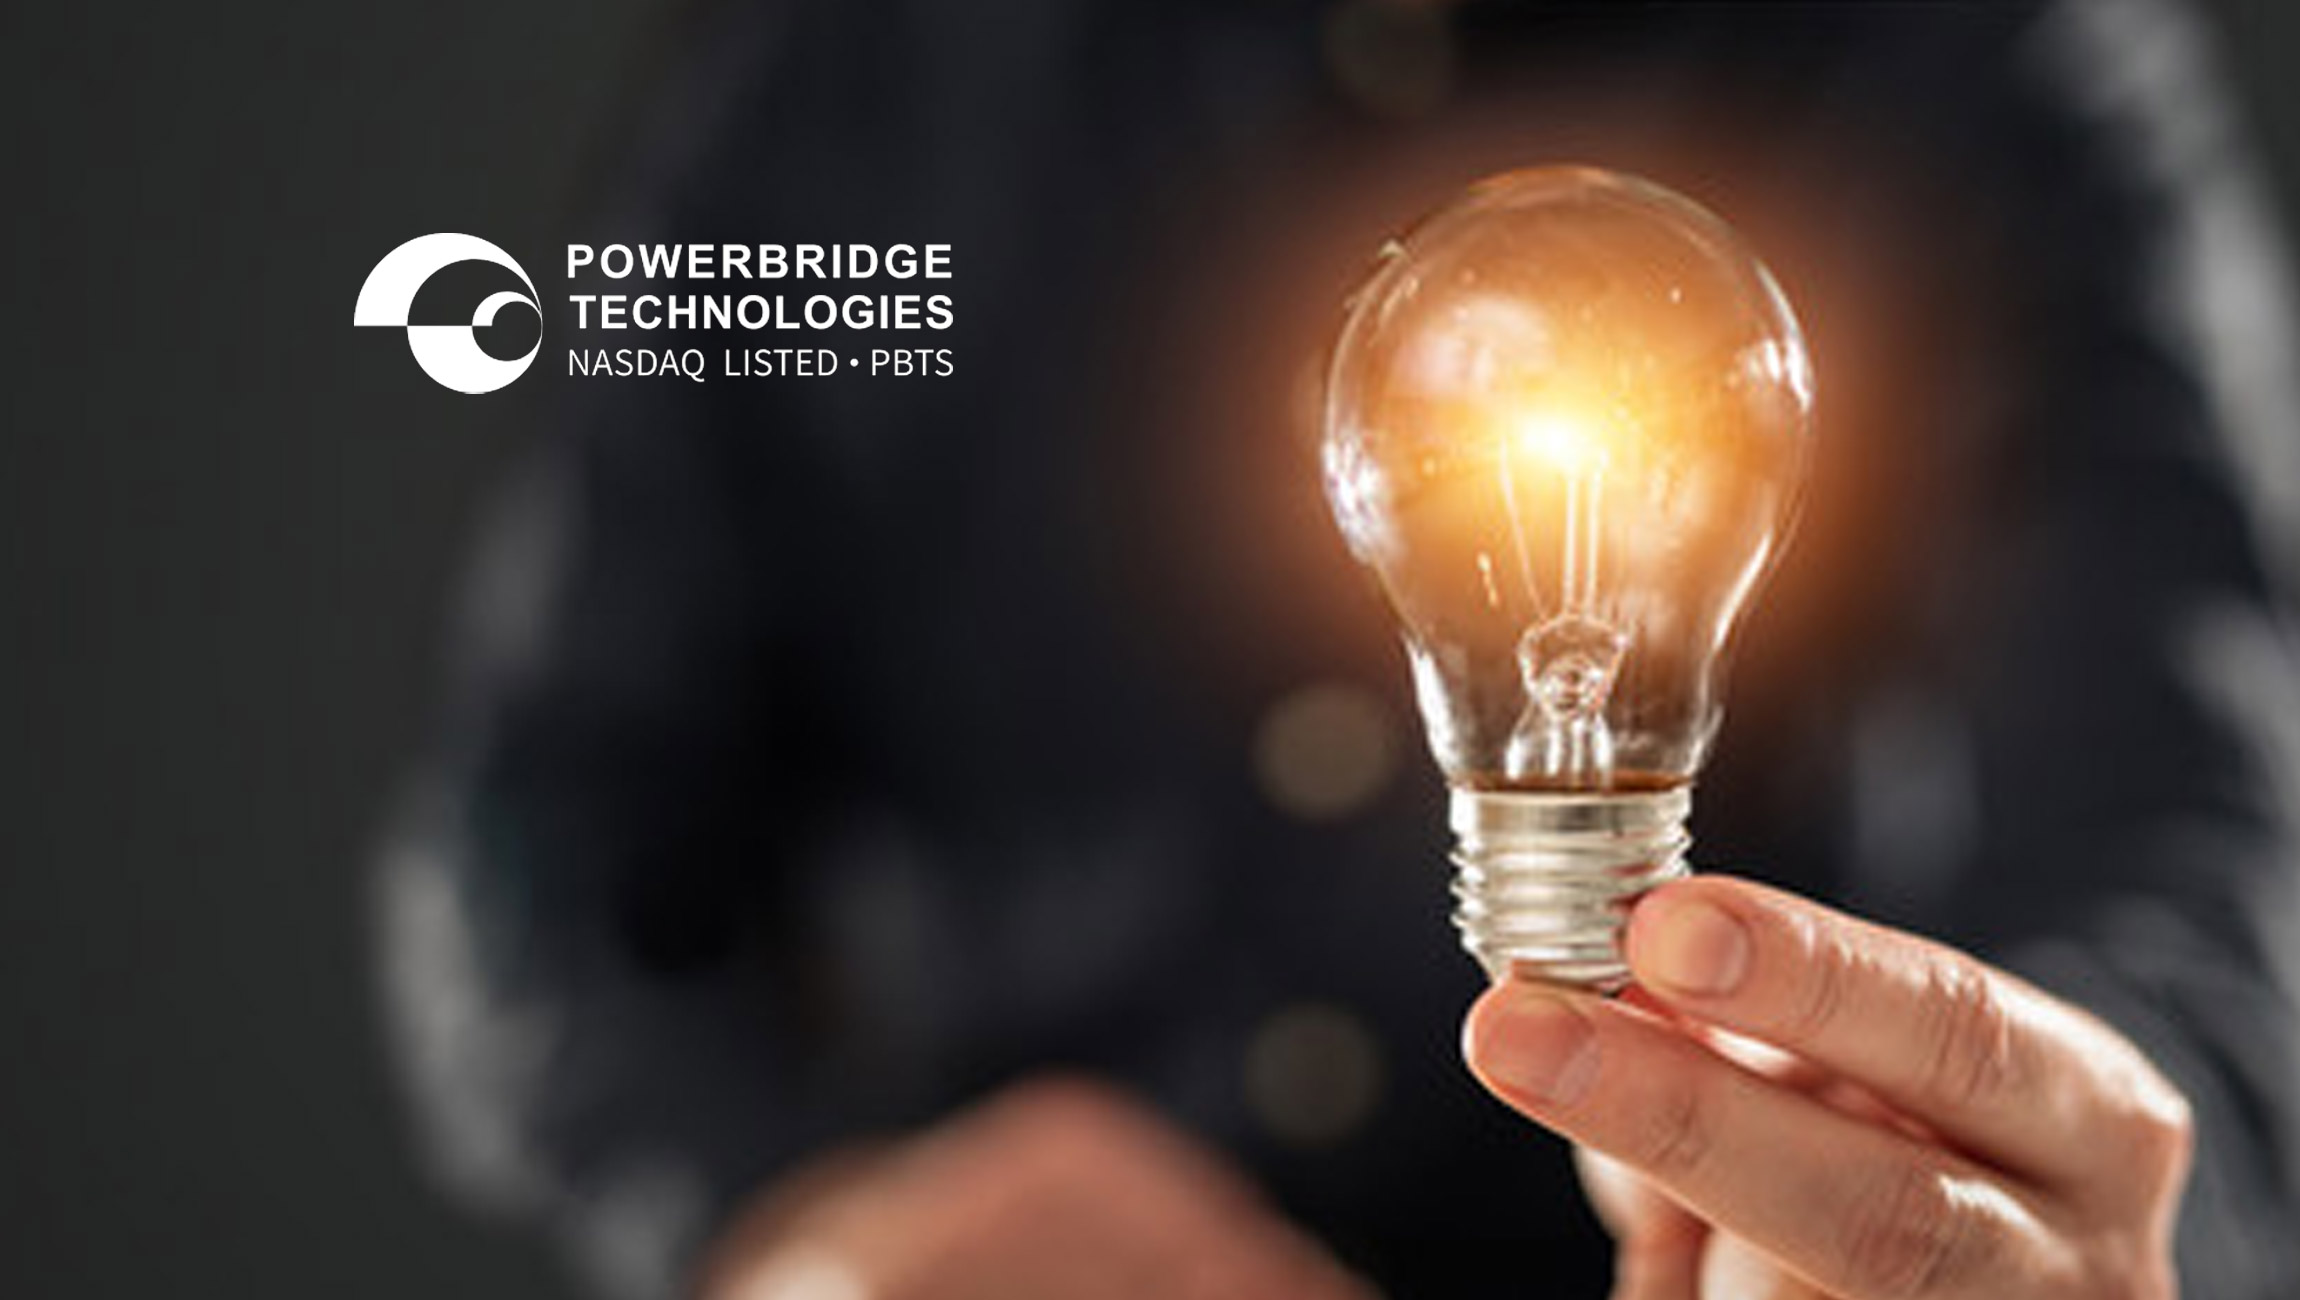 Powerbridge Technologies Establishes Powercrypto Holdings for its Crypto Mining and Digital Asset Operations